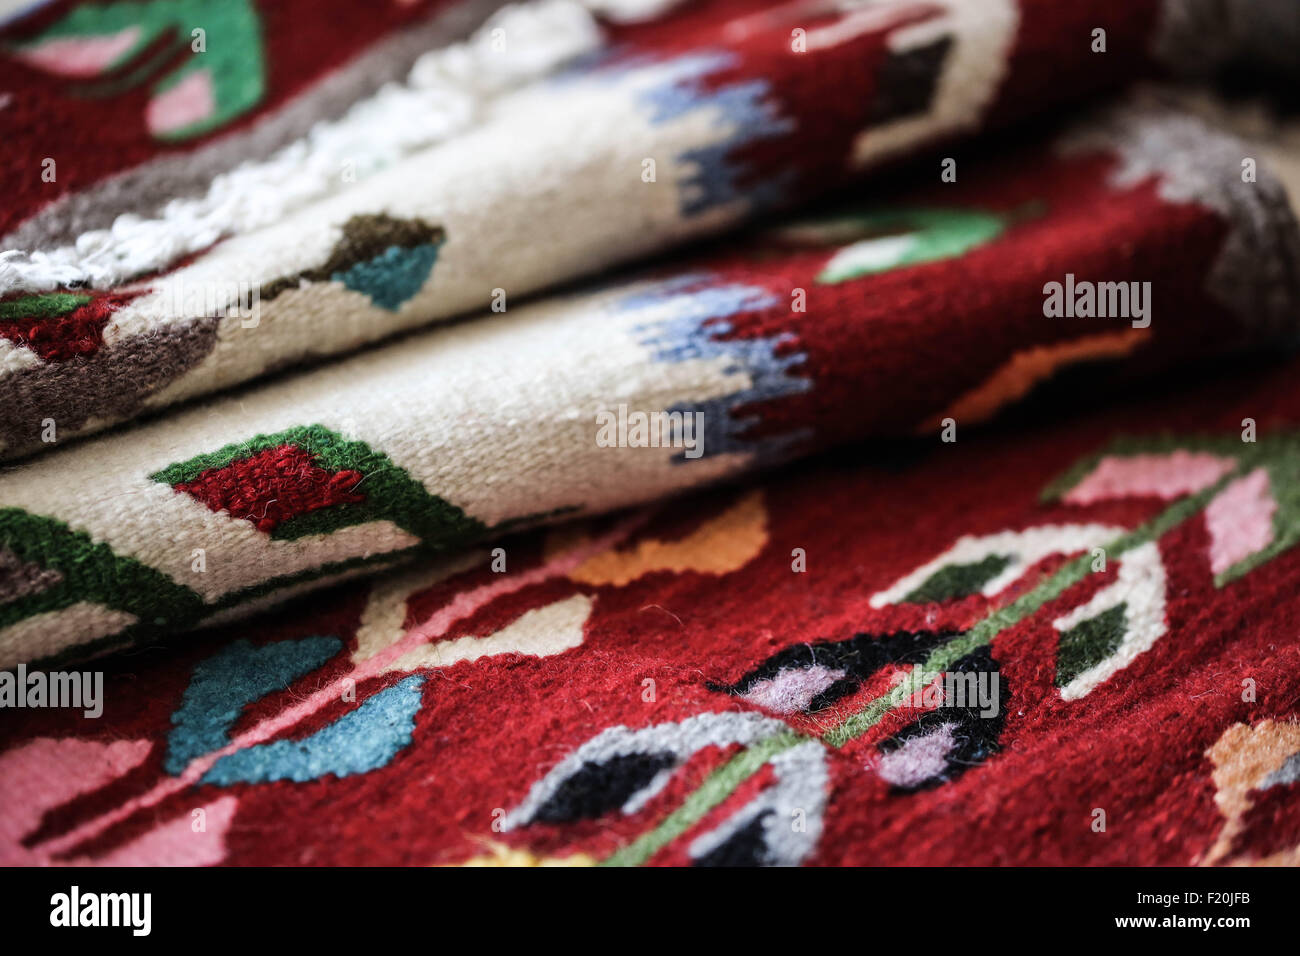 Handloomed rugs from Romanian. - Stock Image